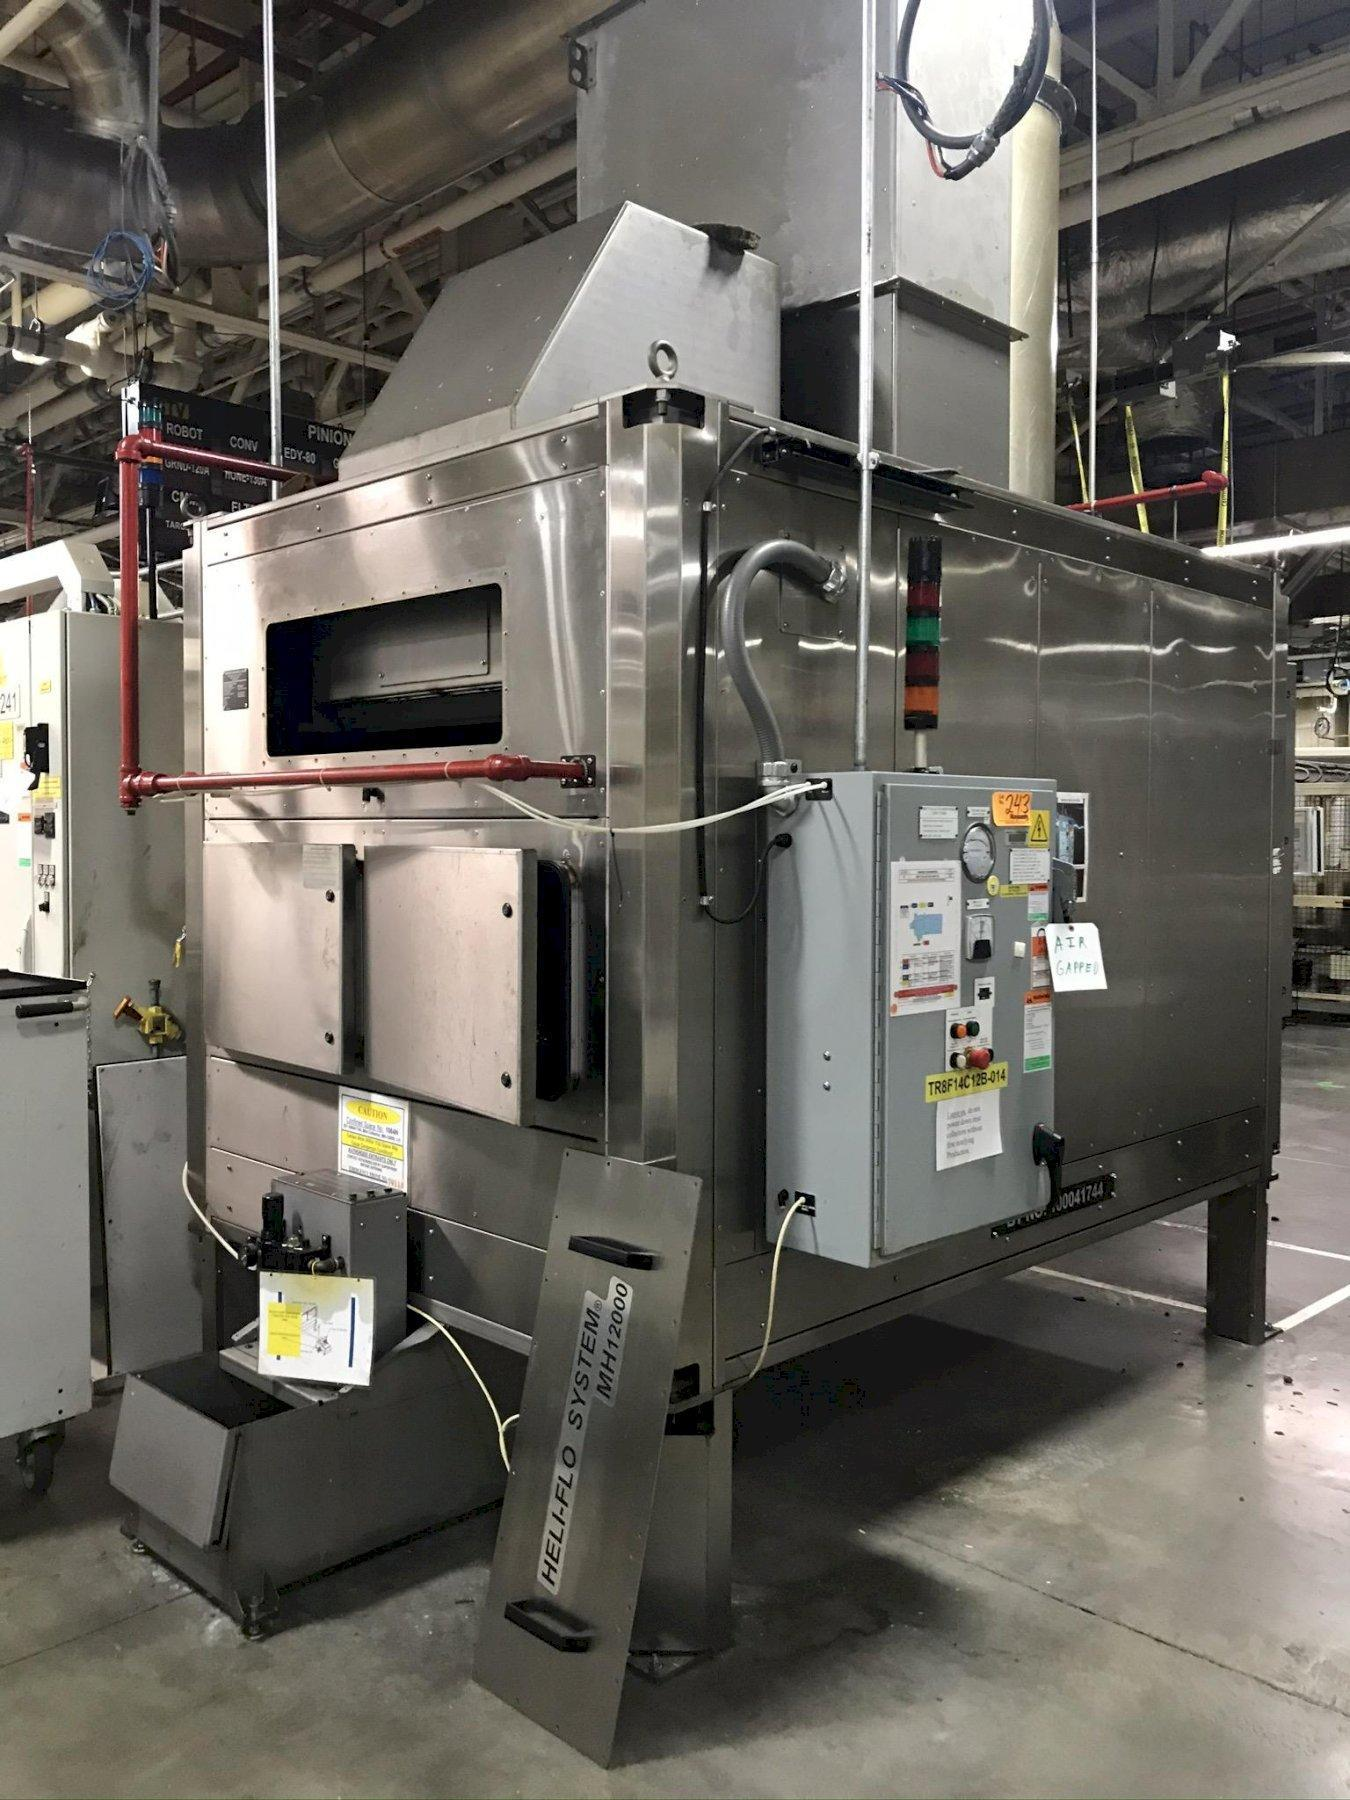 USED HELICAL DYNAMICS 12,000 CFM OIL / MIST COLLECTOR, Stock # 10756, Year 2006